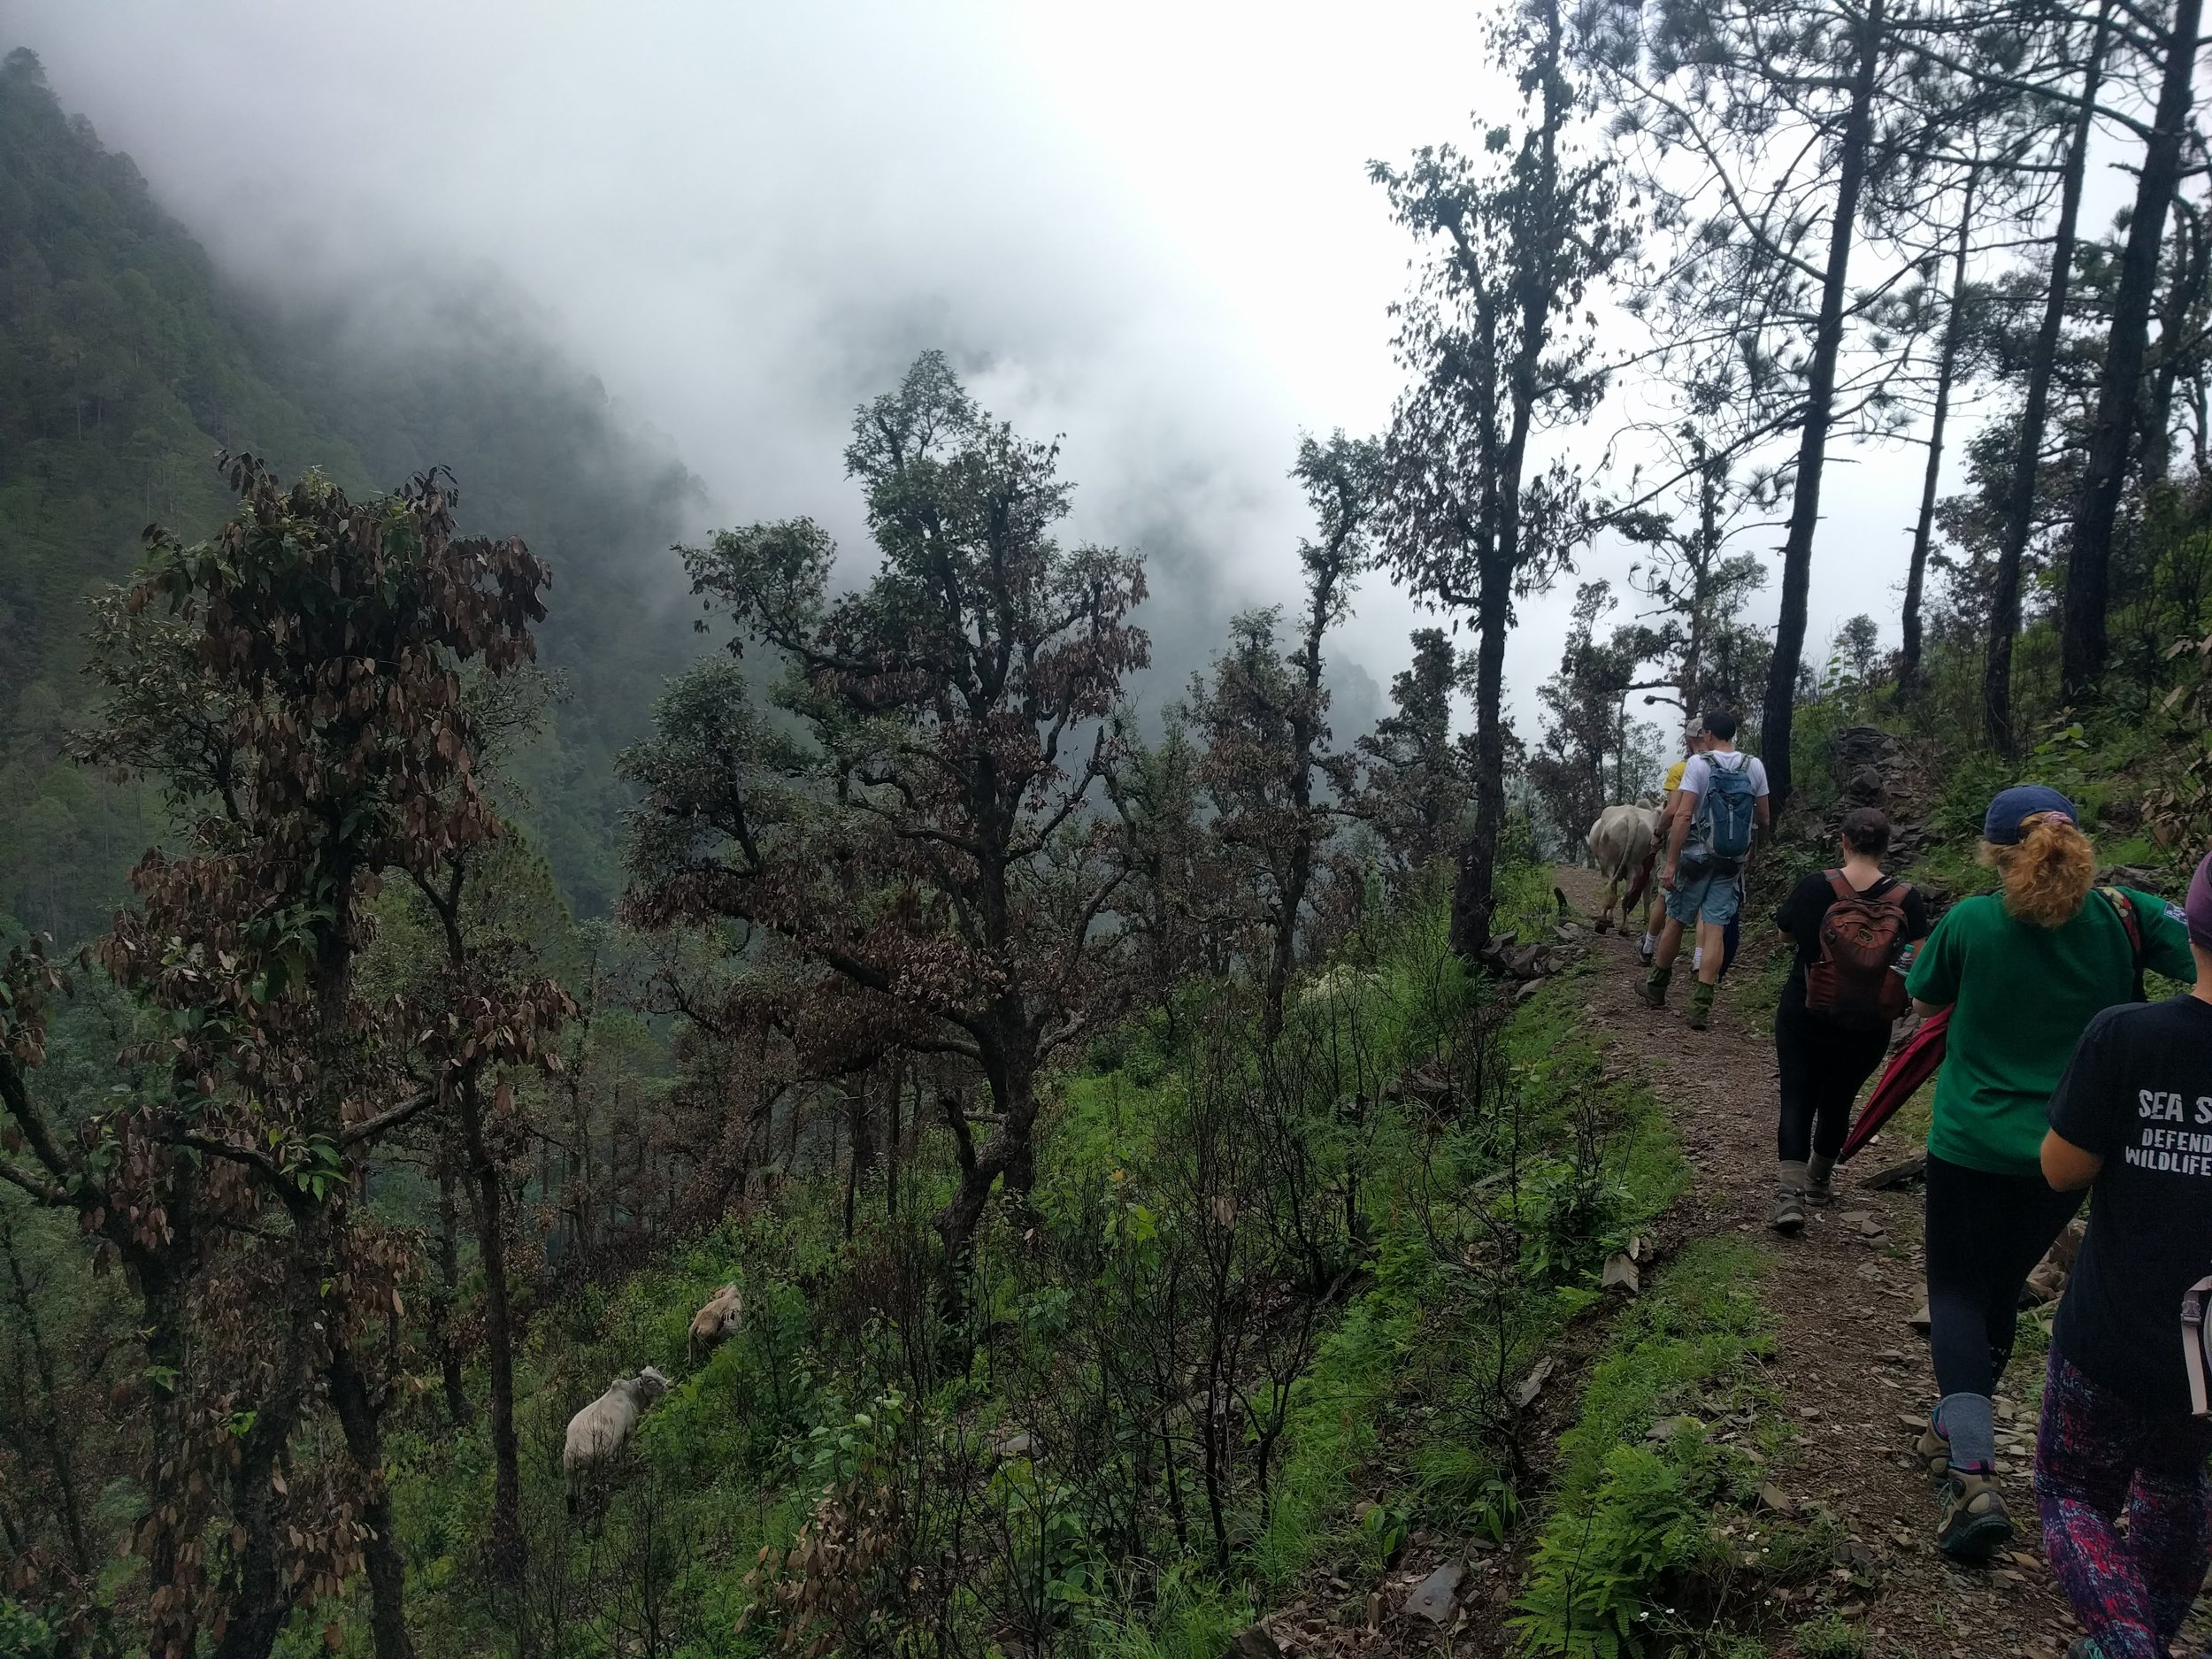 The foggy hike to Kolti Village, with the company of cows